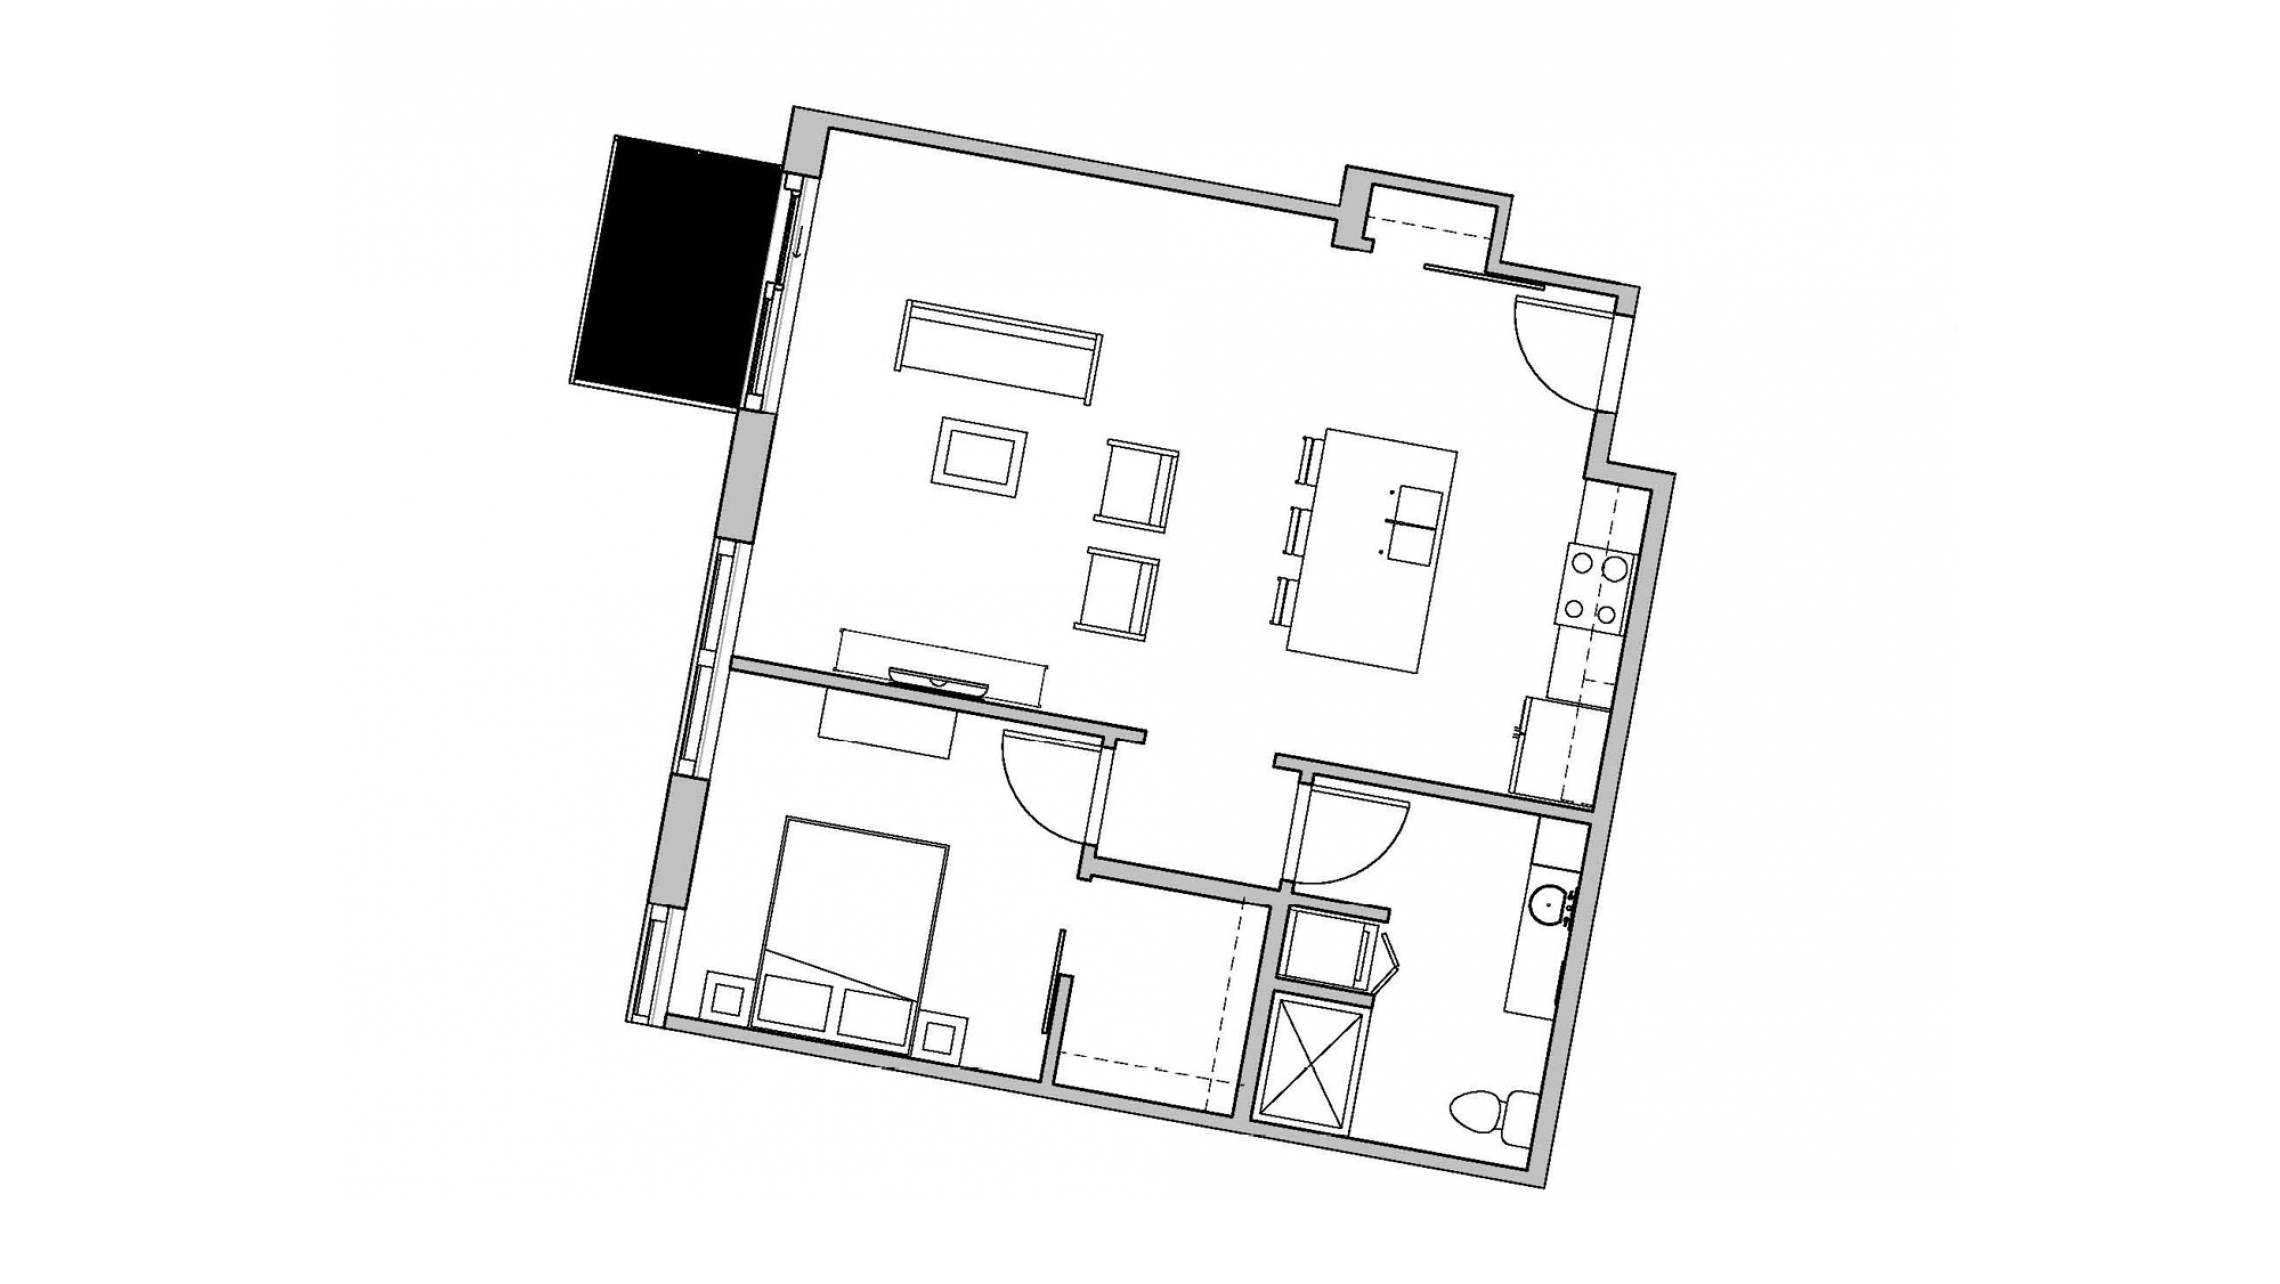 ULI Seven27 214 - One Bedroom, One Bathroom